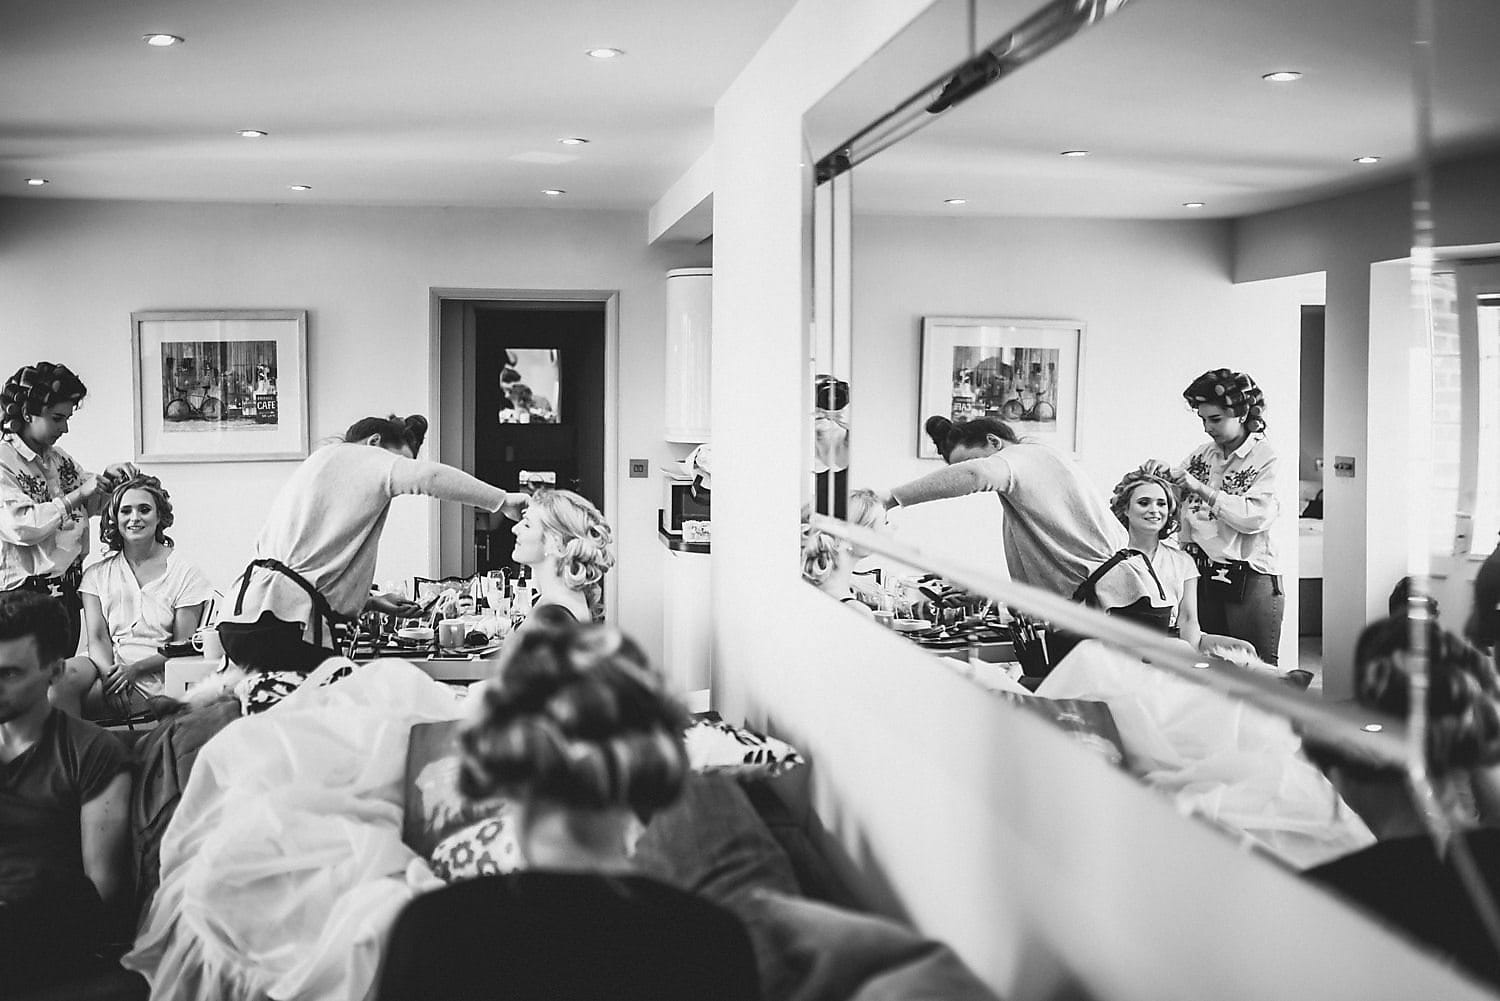 The bride and bridesmaids get ready together